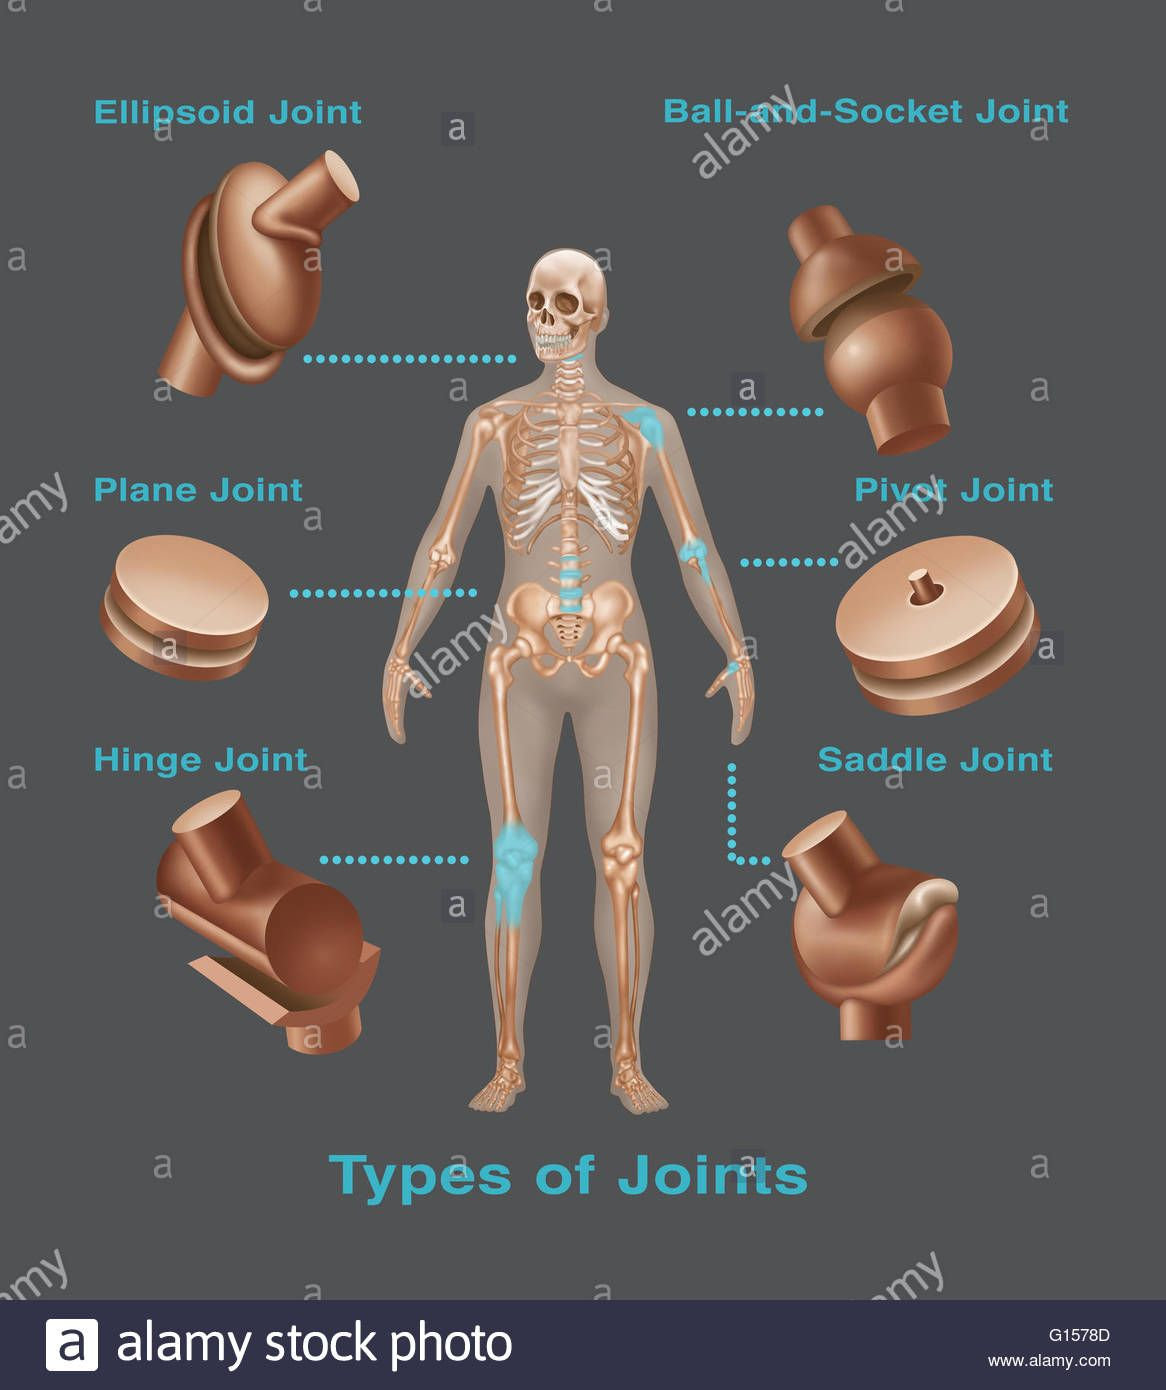 Joint Replacements In The Human Body Types Of Joint